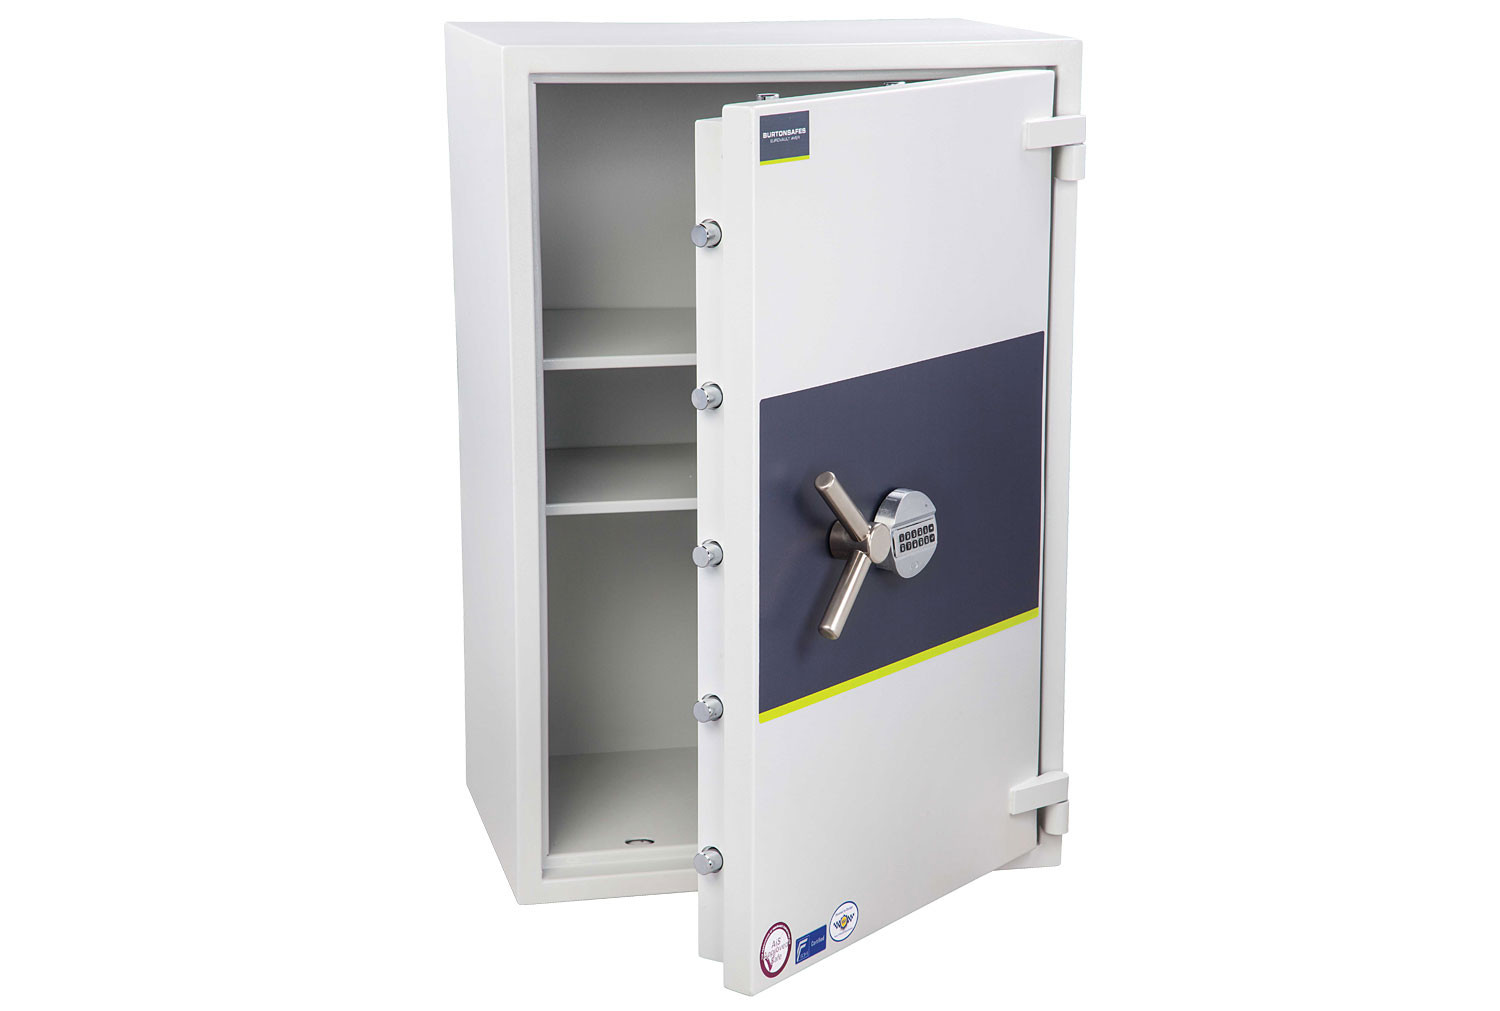 Burton Eurovault Aver Grade 2 Size 5 Safe With Electronic Lock (202ltrs)